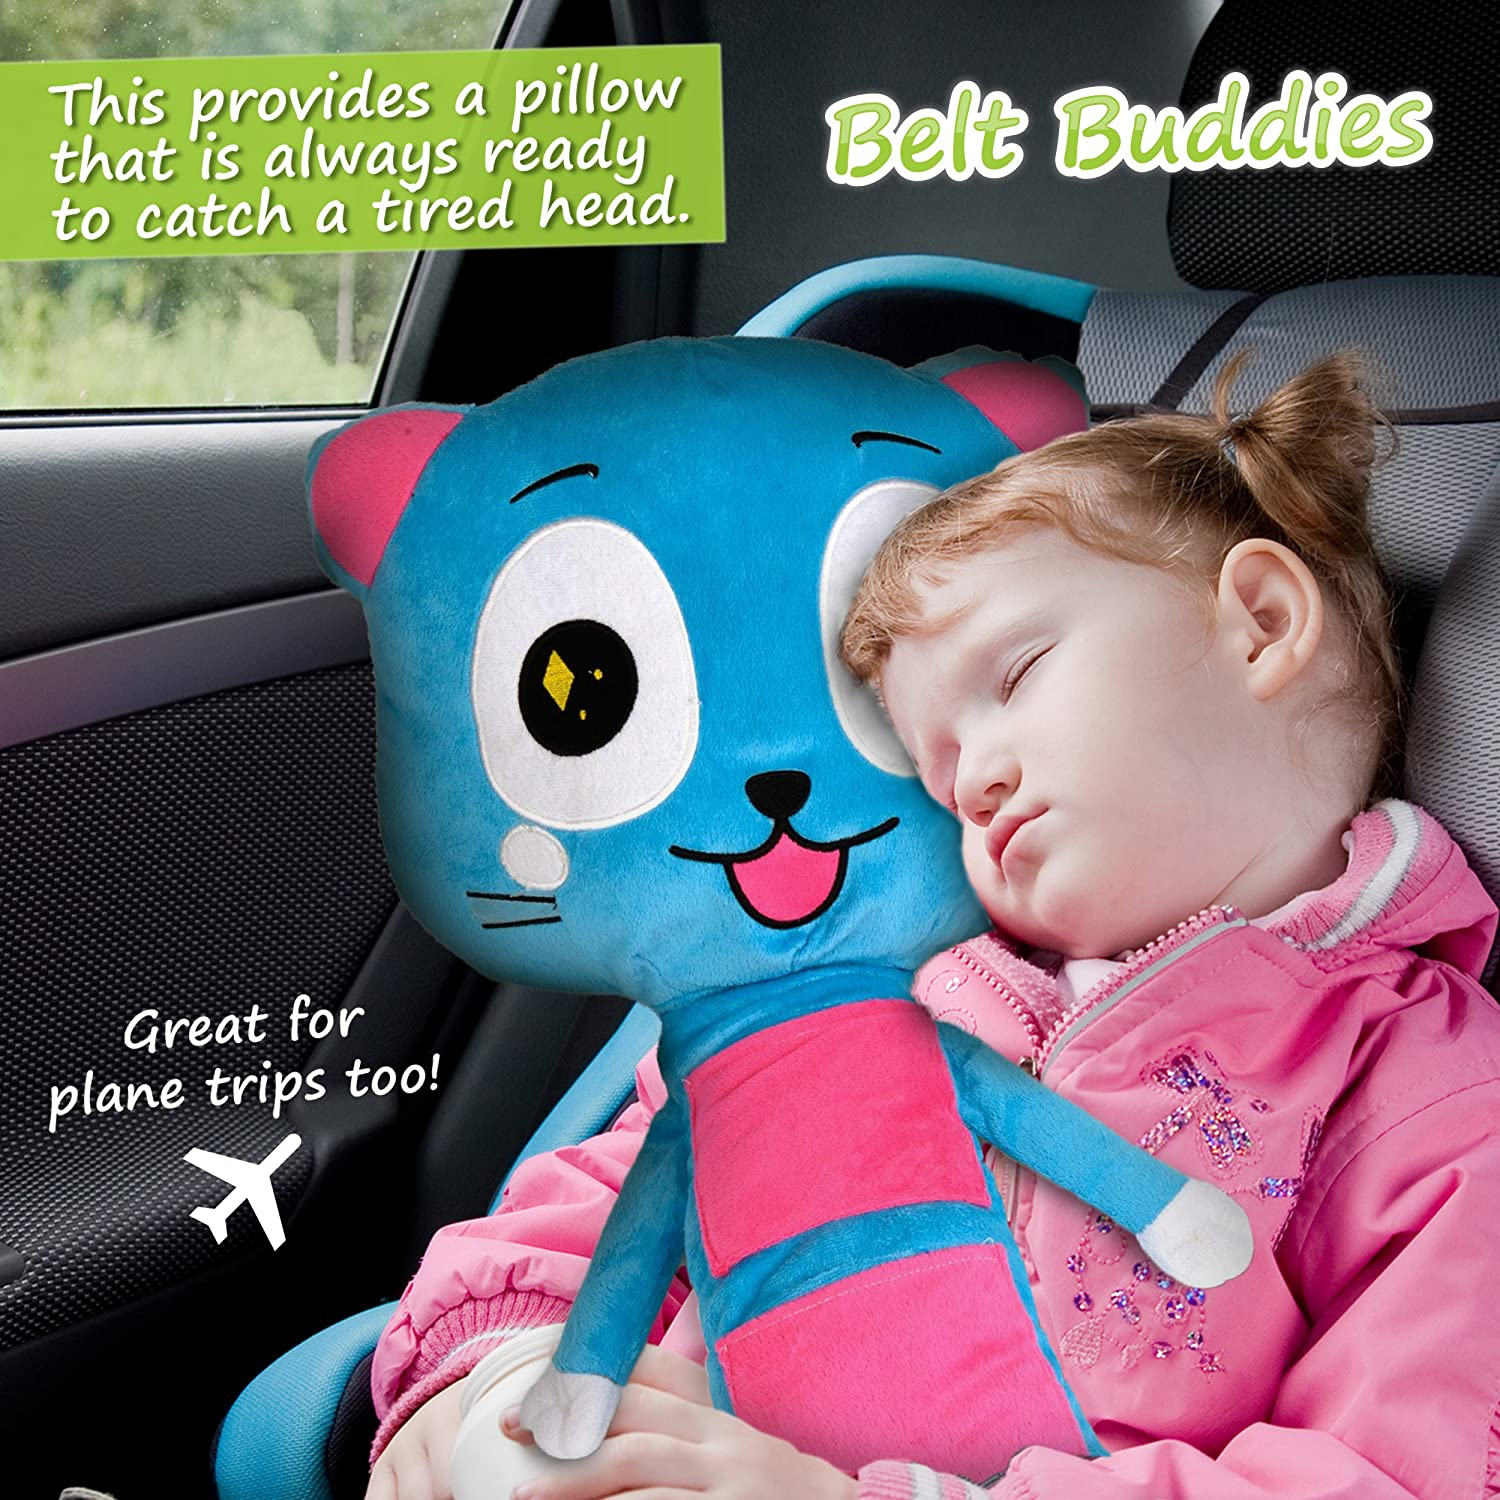 Amazon.com : Belt Buddies - Car Seat Toy, Comfortable and Safe ...